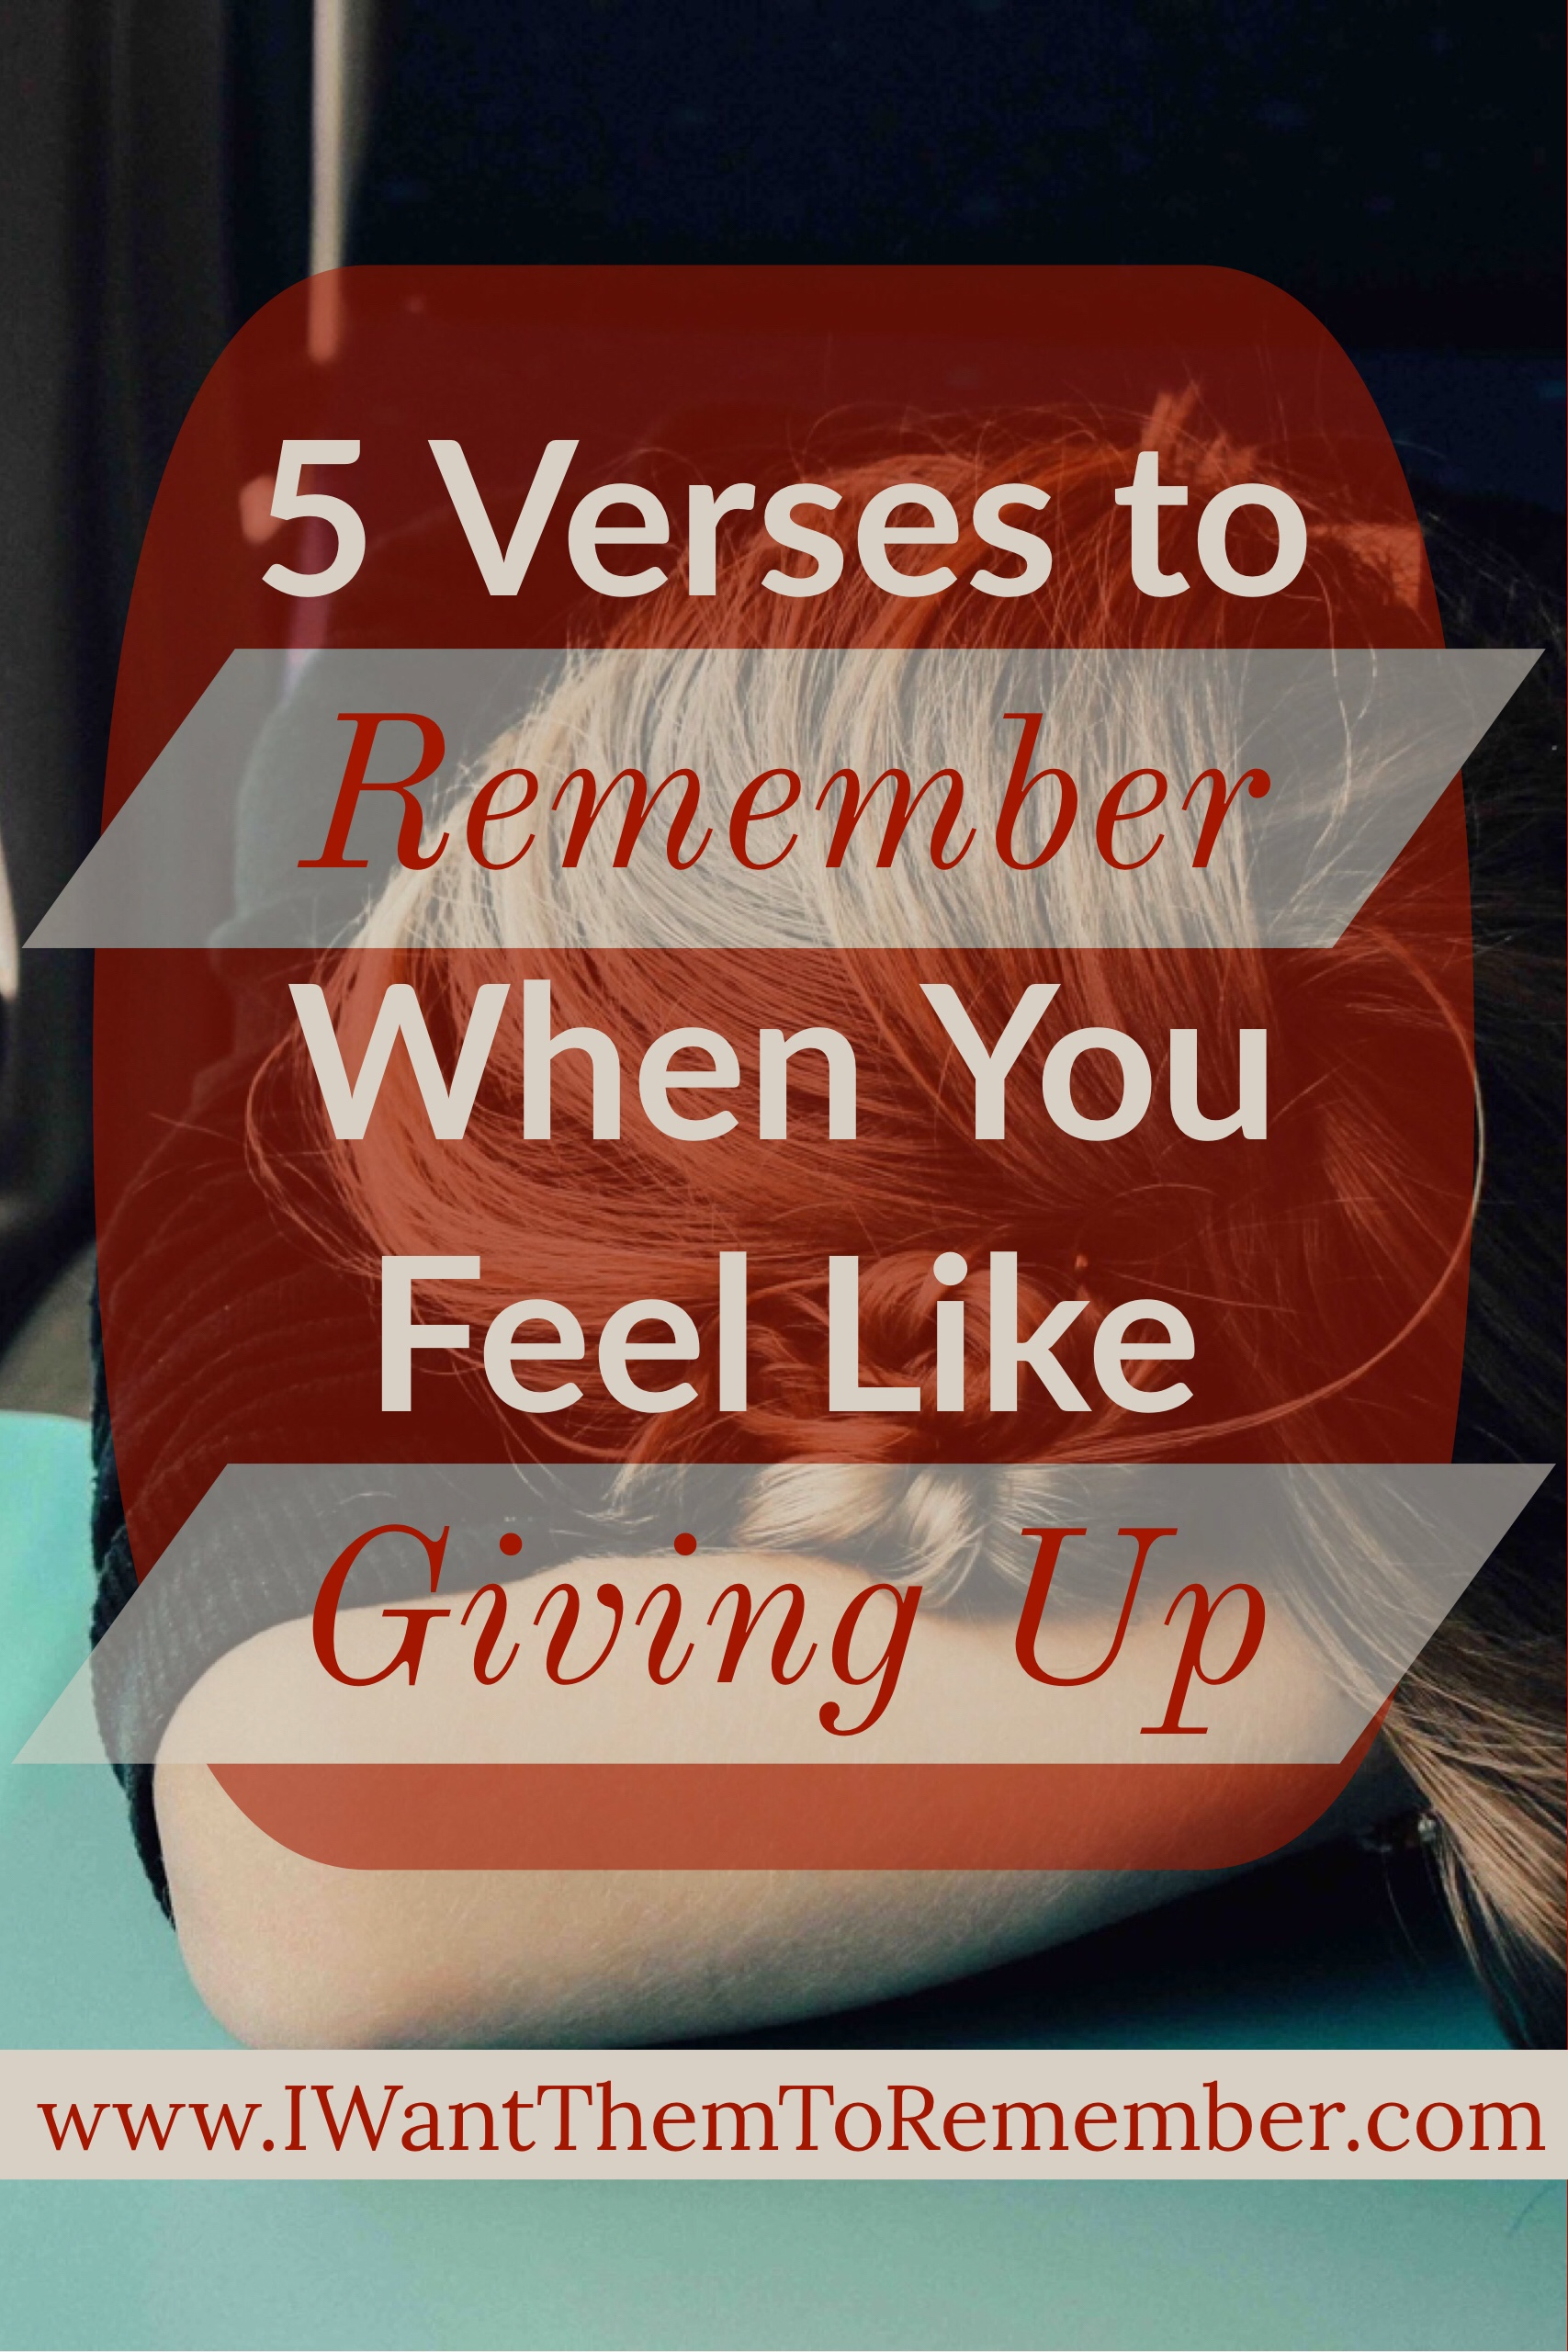 Do you ever feel like giving up? Don't we all at times? When those times come remember these 5 verses to help you continue in obedience and faith.